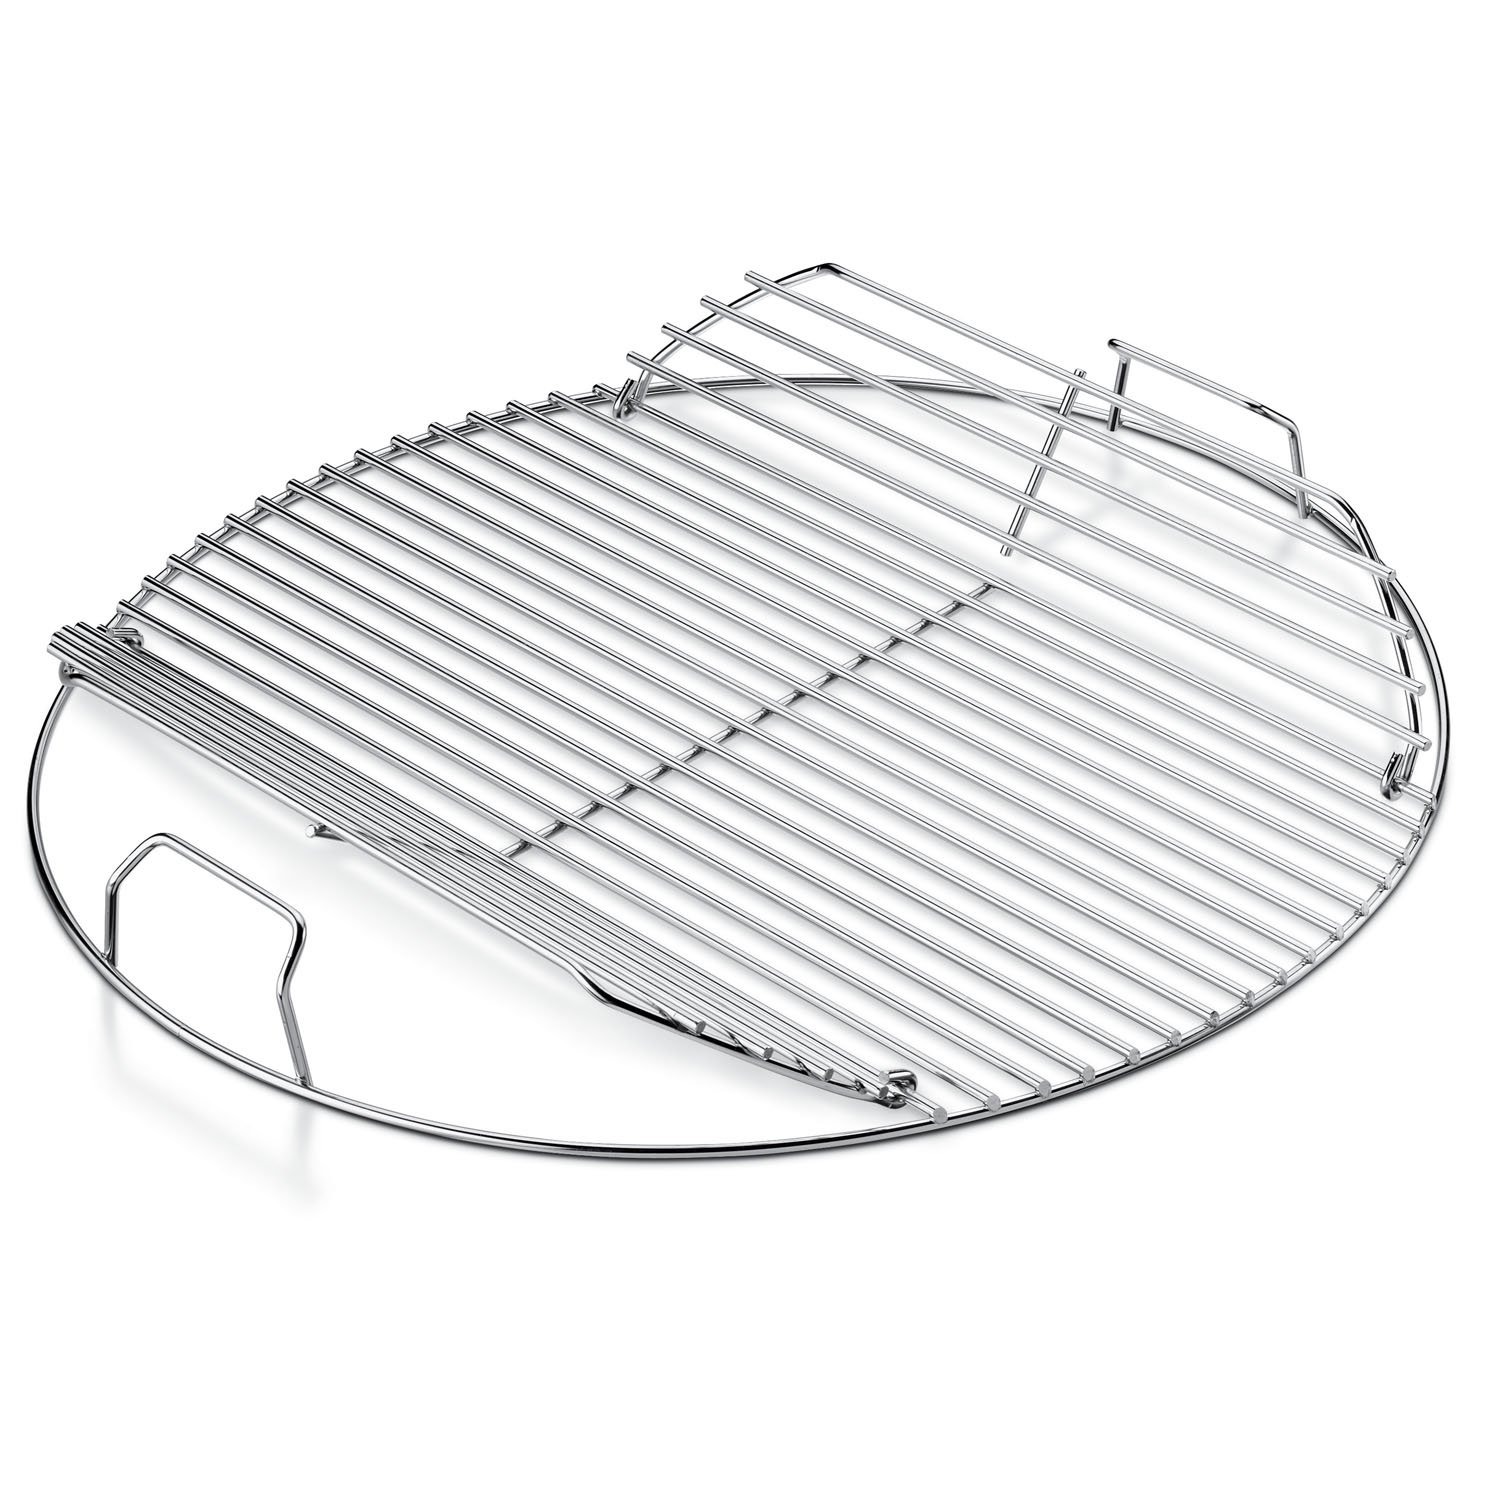 Weber Hinged Cooking Grate by Weber